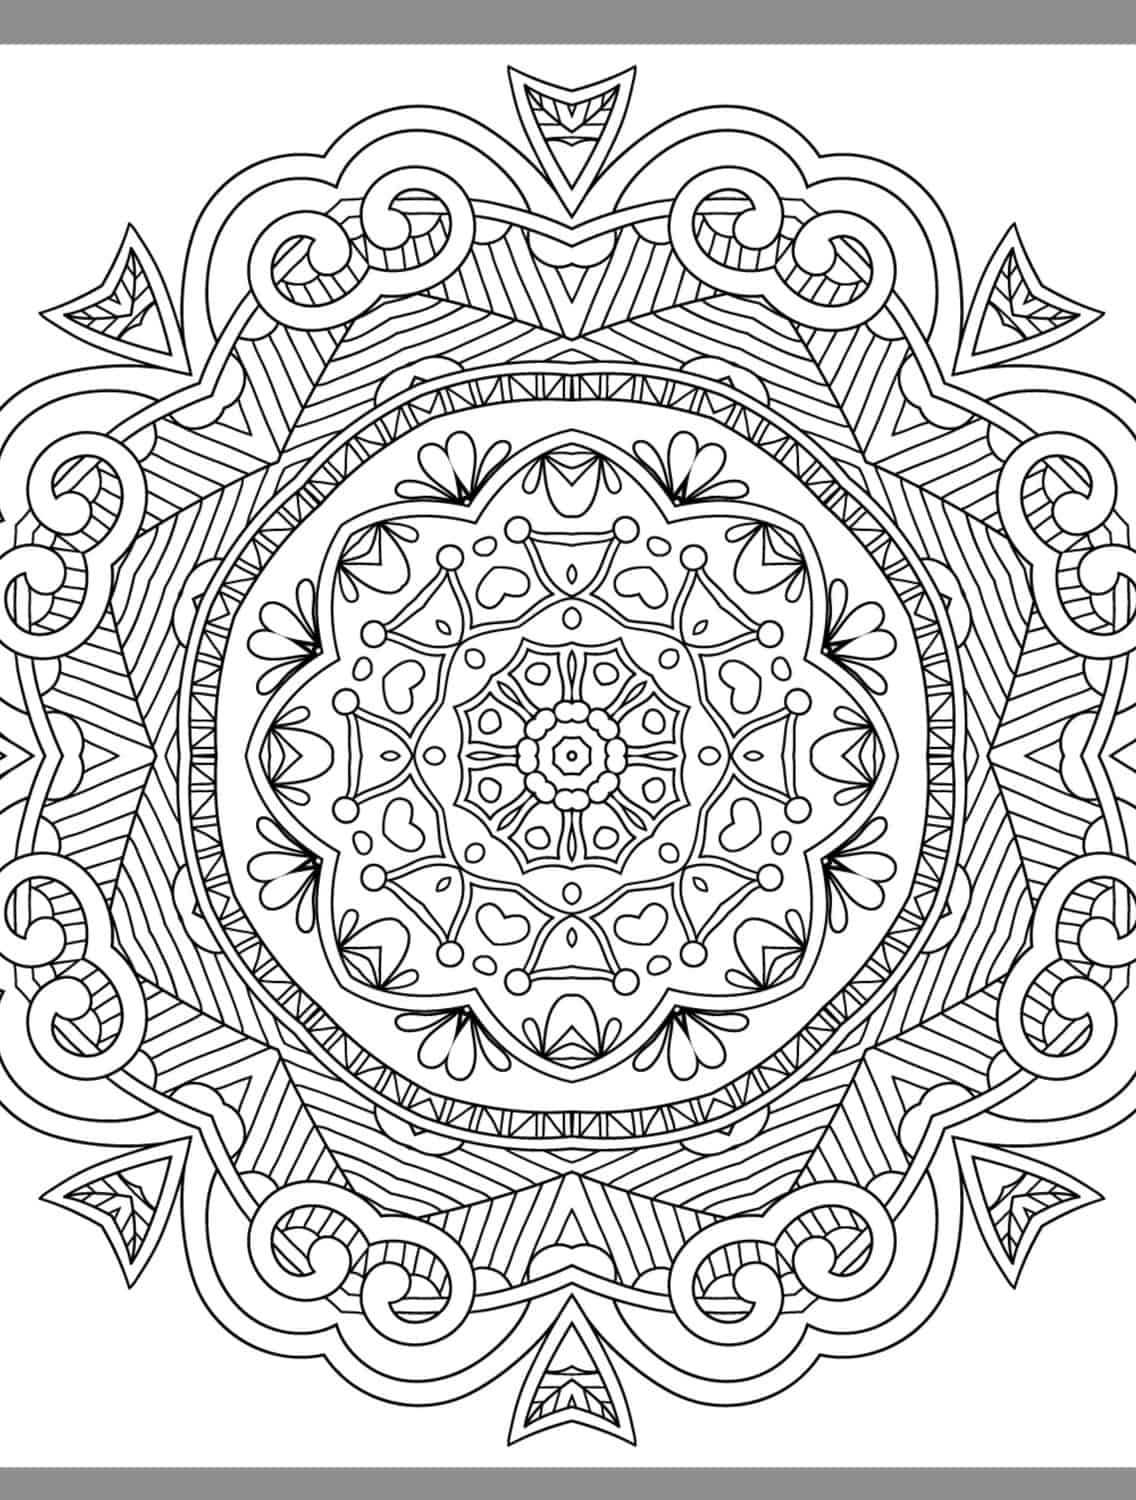 ... More Free Printable Adult Coloring Pages - Page 20 of 25 - Nerdy Mamma